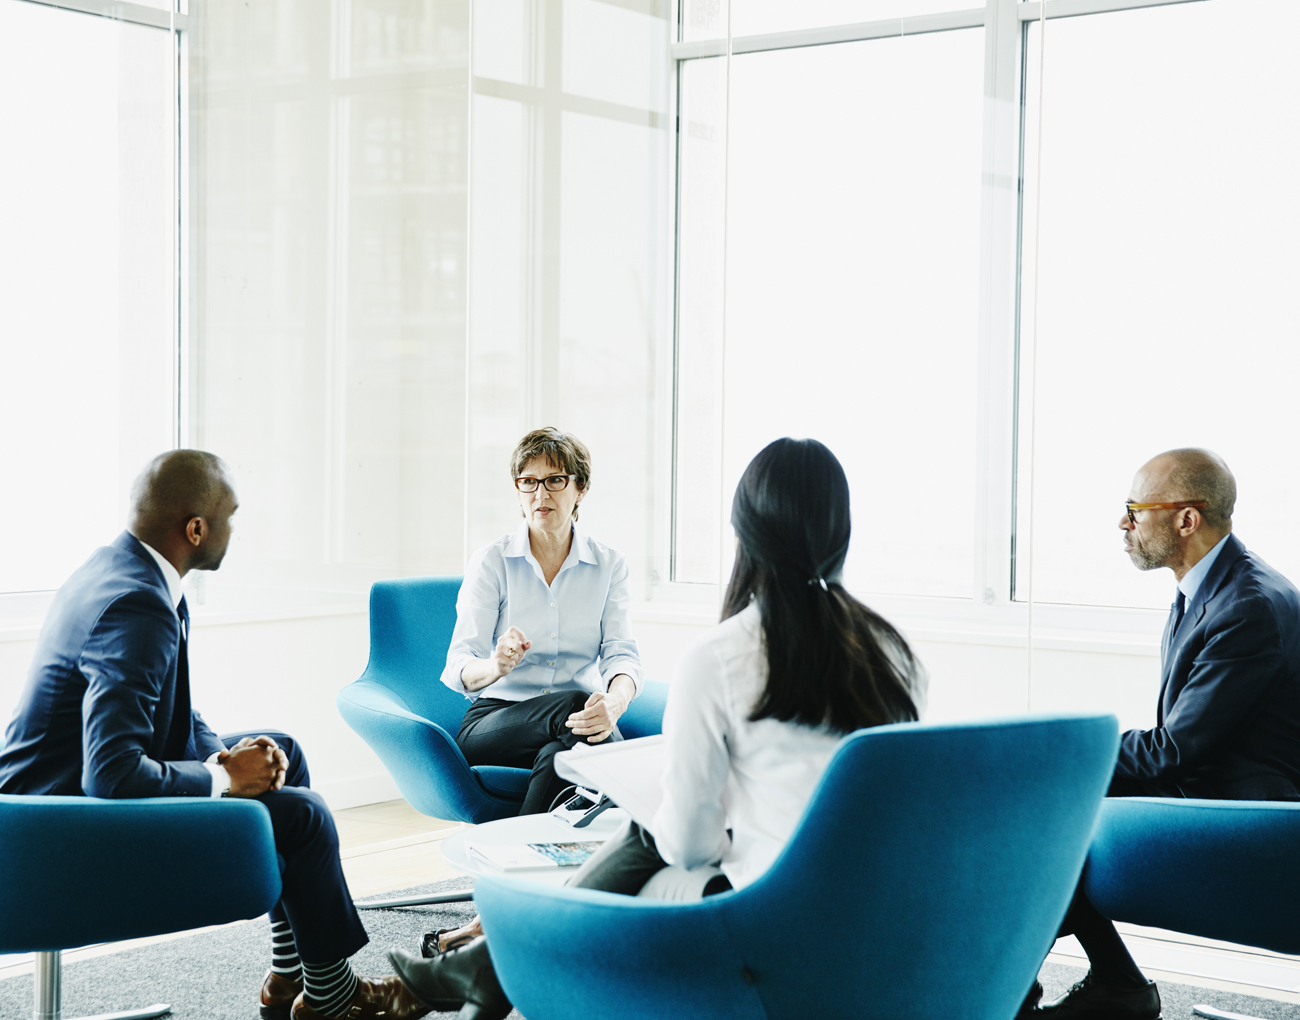 A group meets in an office.